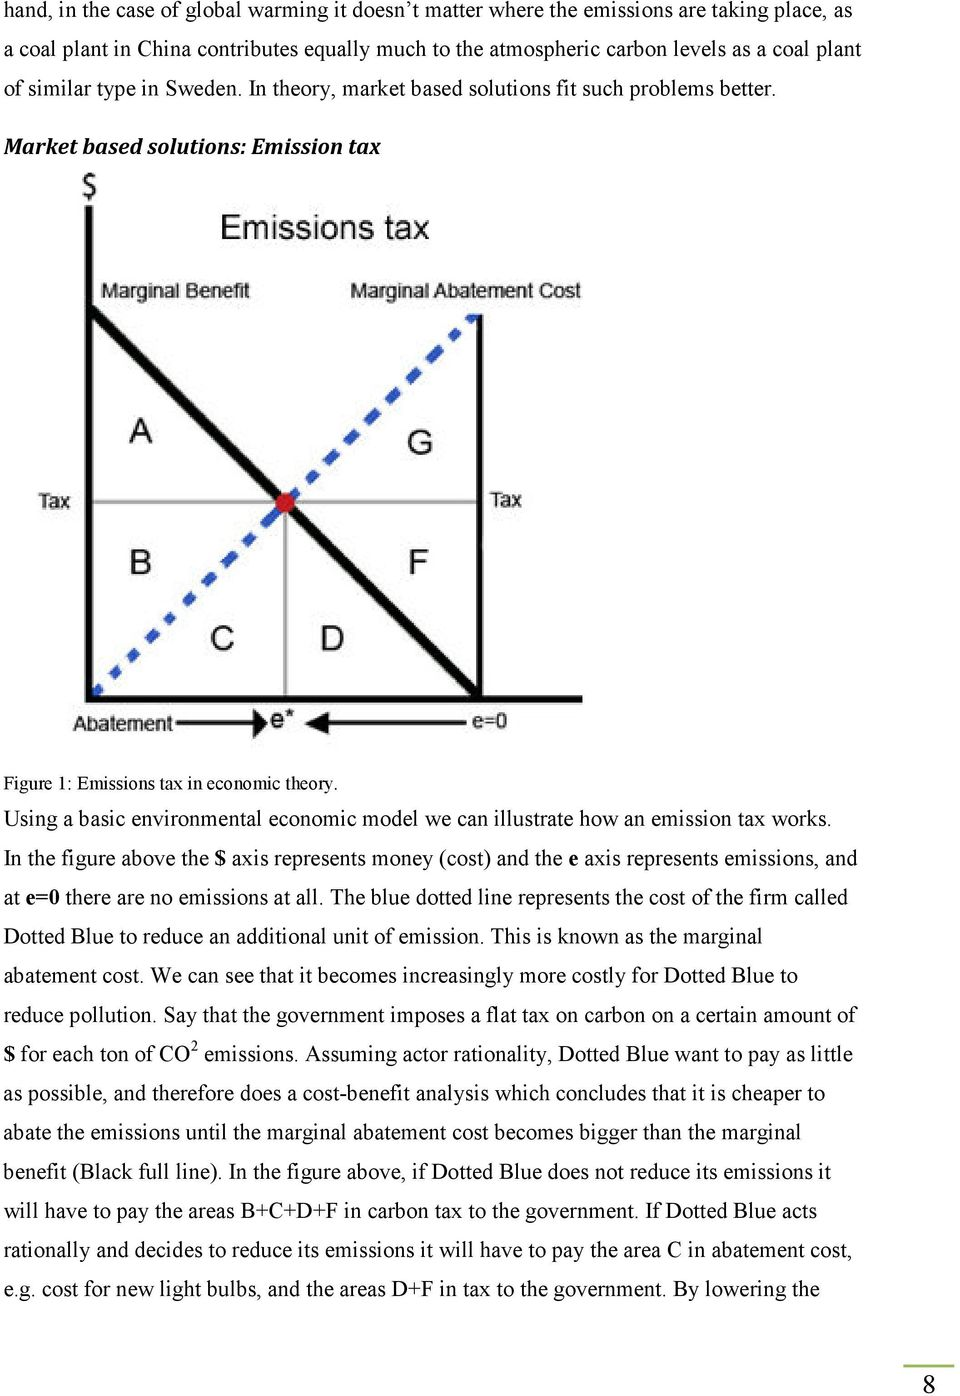 Using a basic environmental economic model we can illustrate how an emission tax works.